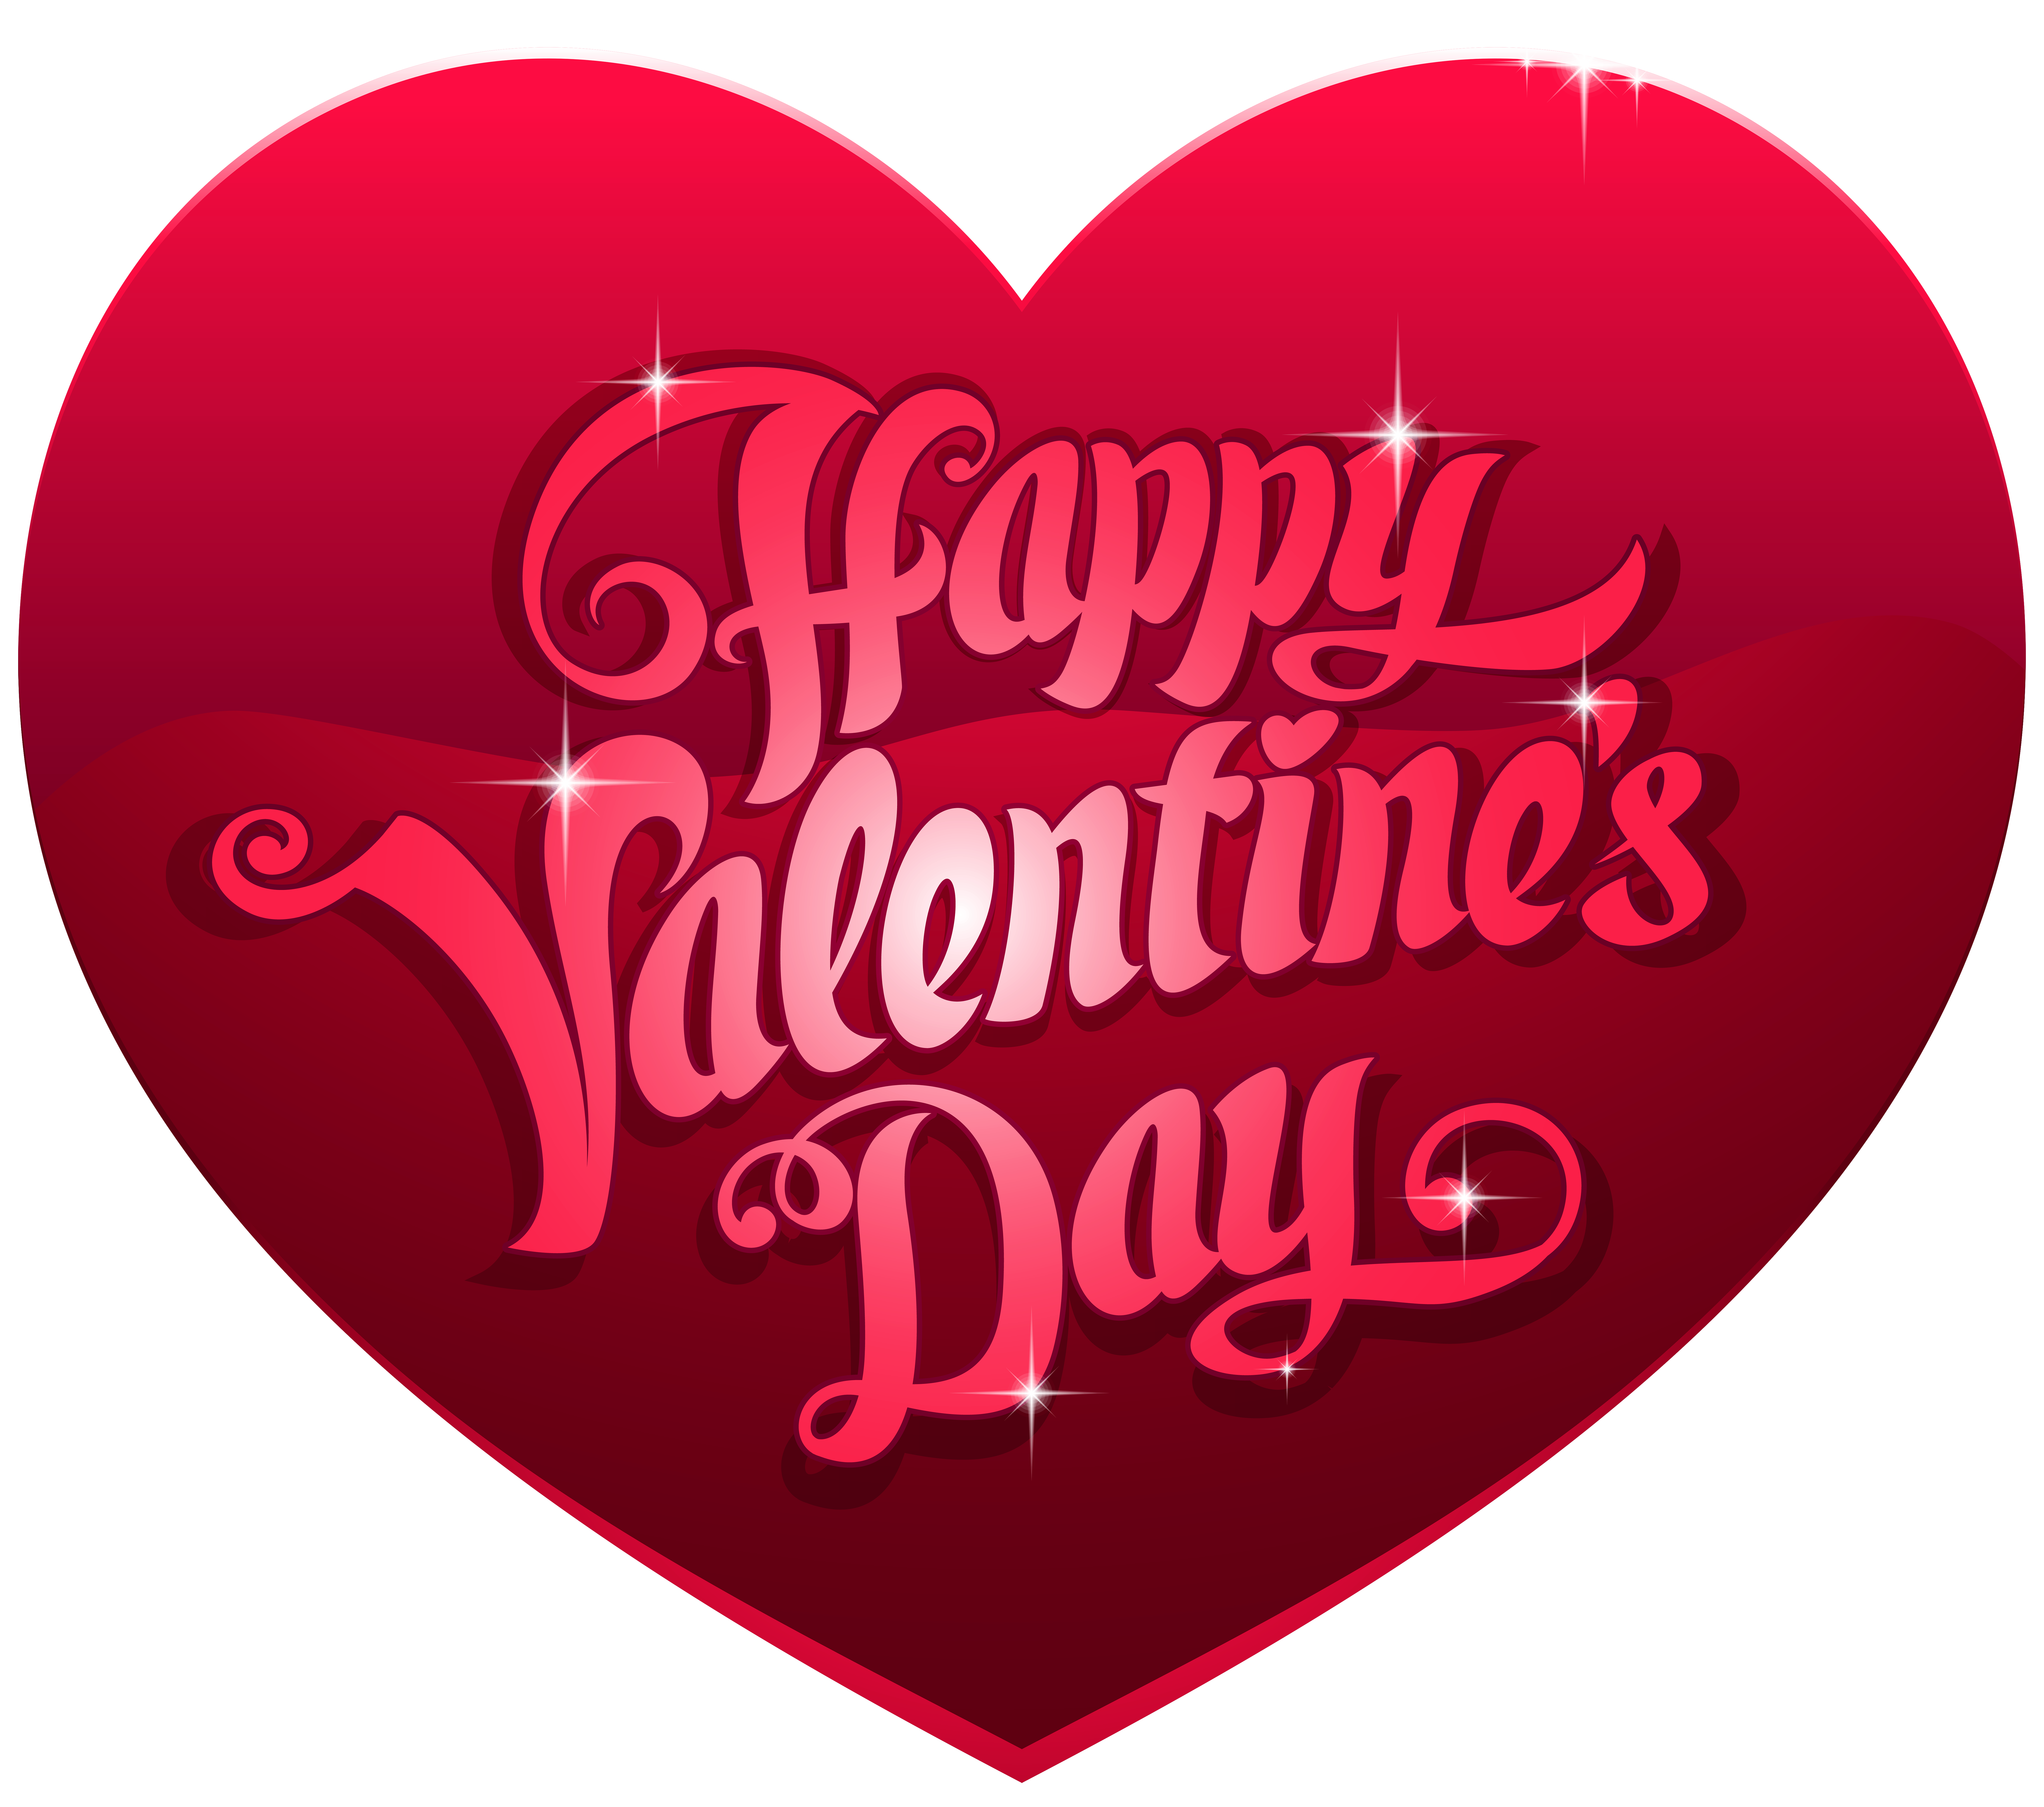 Happy valentines day heart clipart banner transparent Happy Valentine's Day Heart PNG Clip Art Image | Gallery ... banner transparent